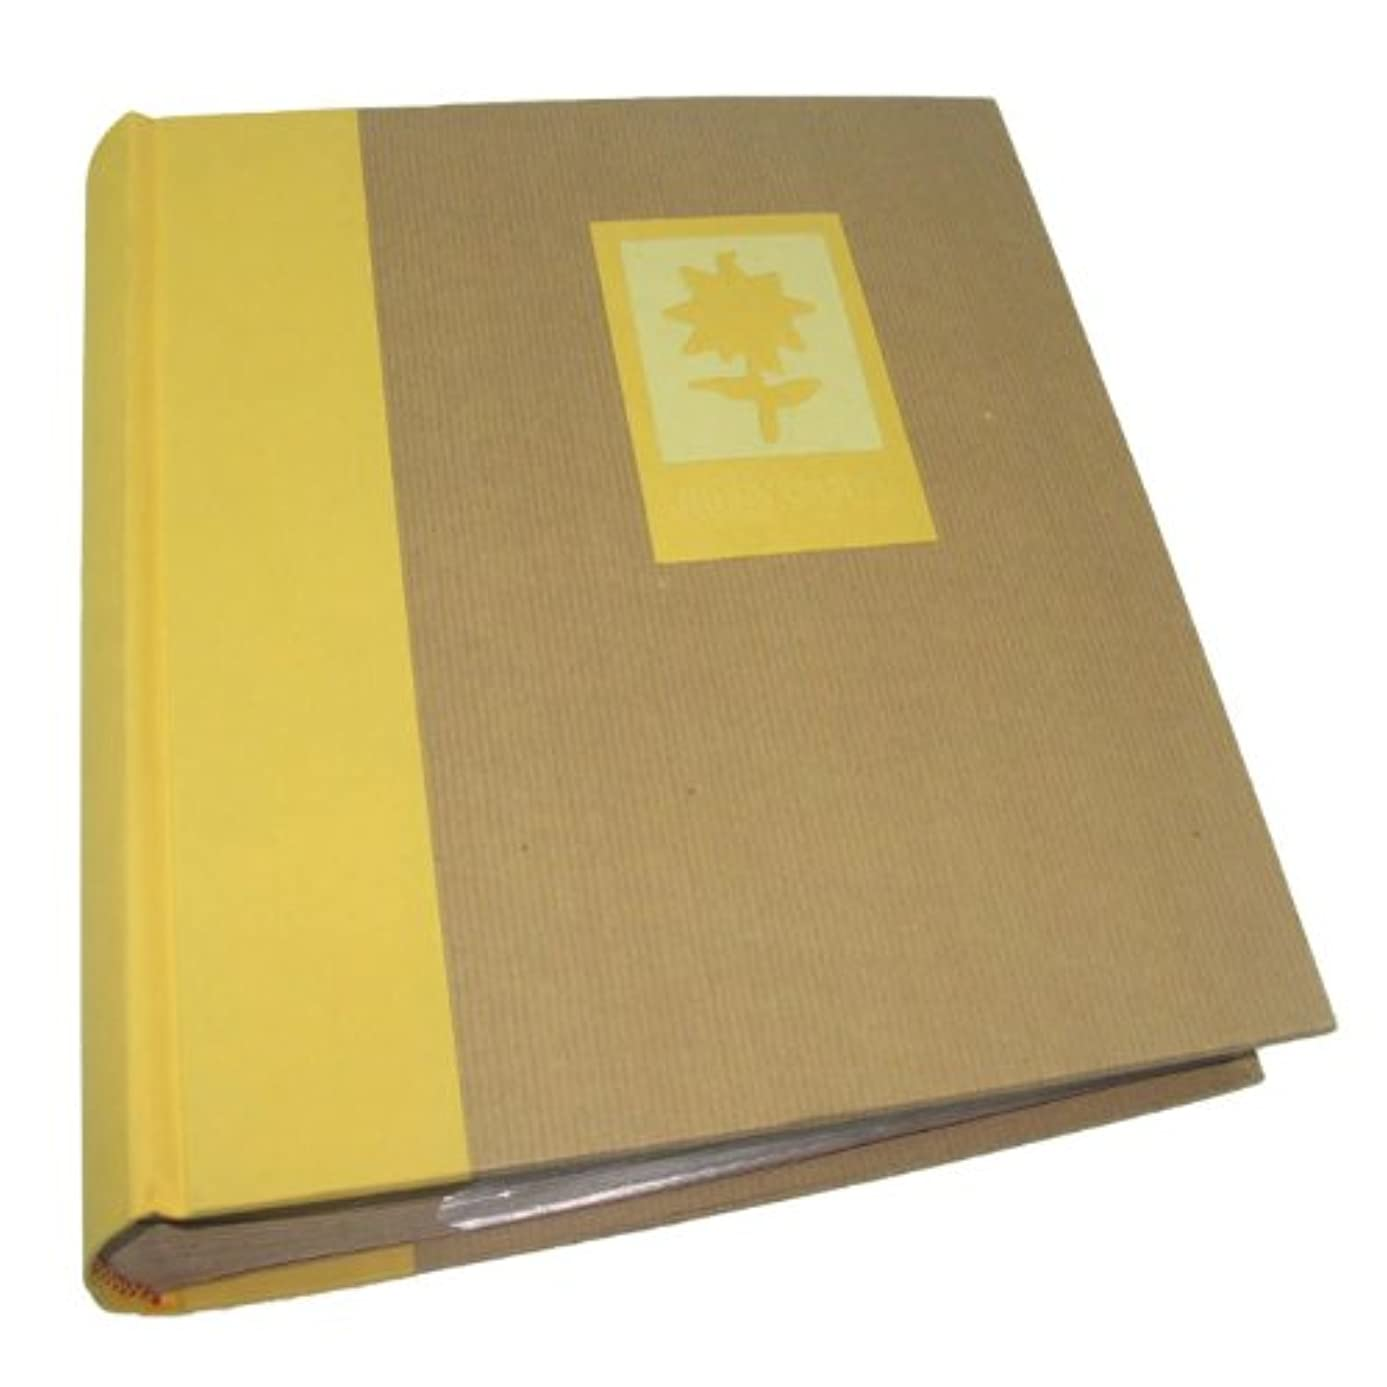 Dorr Green Earth Yellow Flower 7x5 Slip In Photo Album for 200 Photos [840320YFLOW]